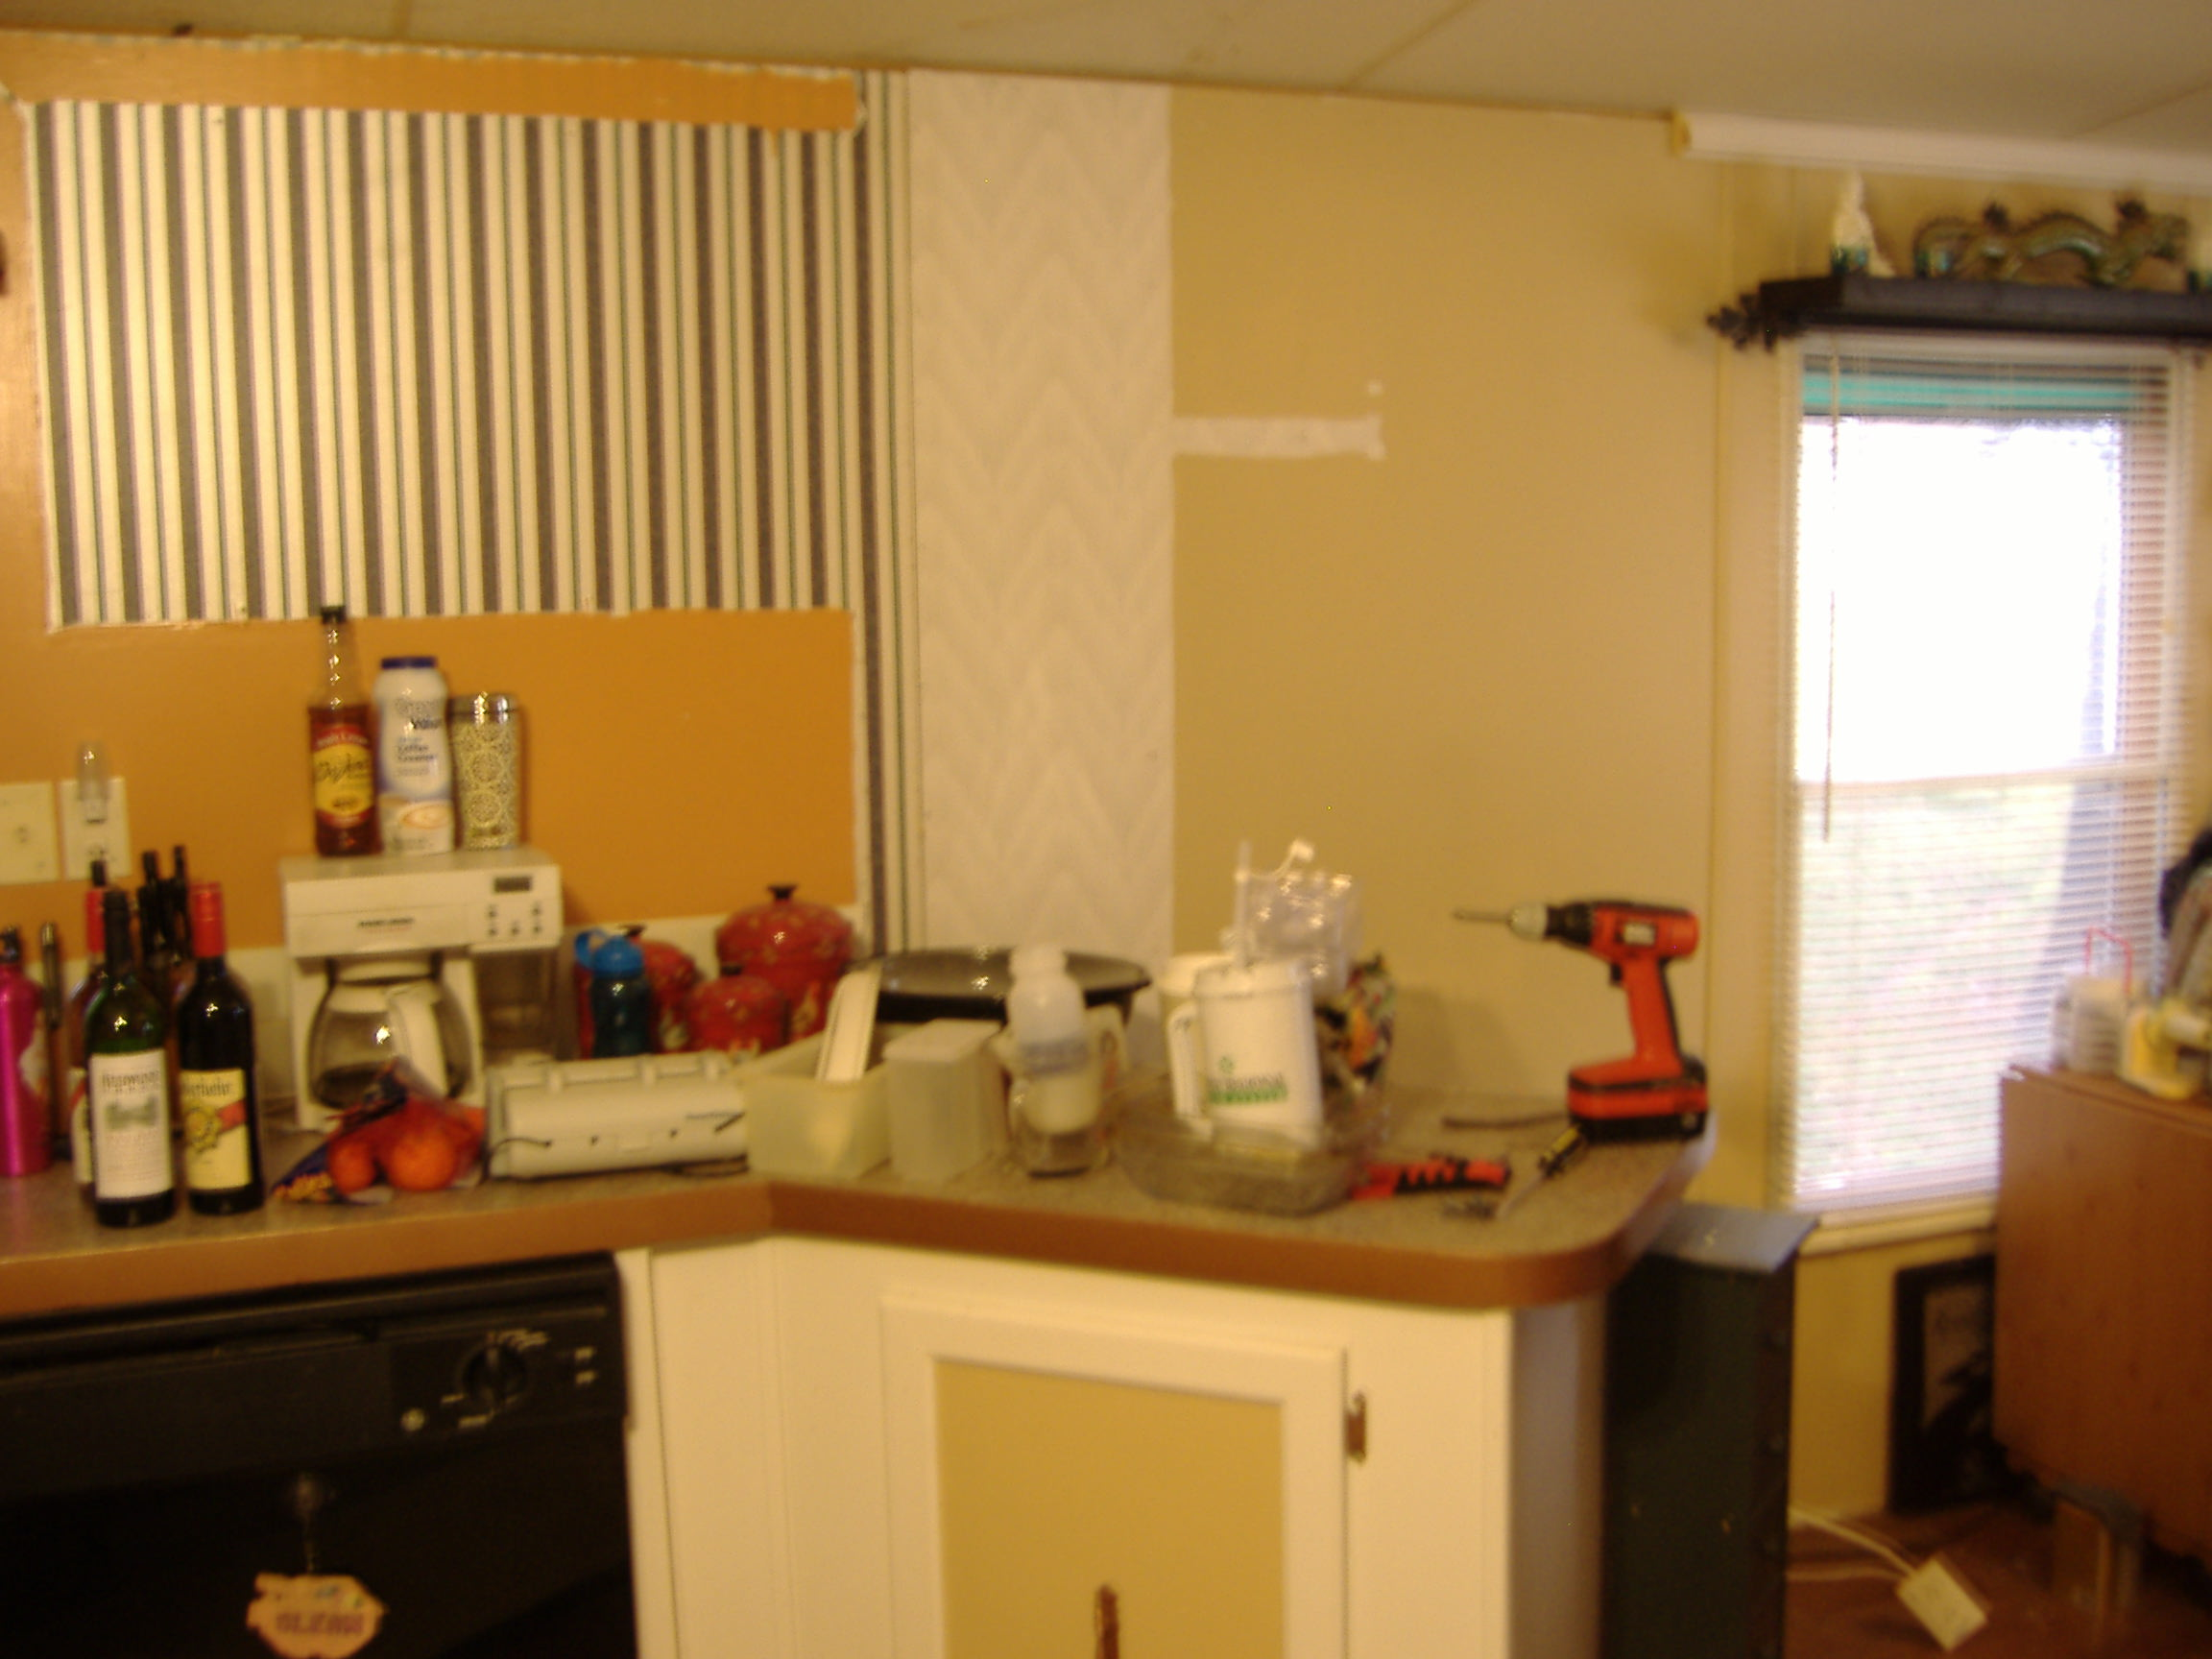 Kitchen Remodel Part 1 Before – Designs by Studio C